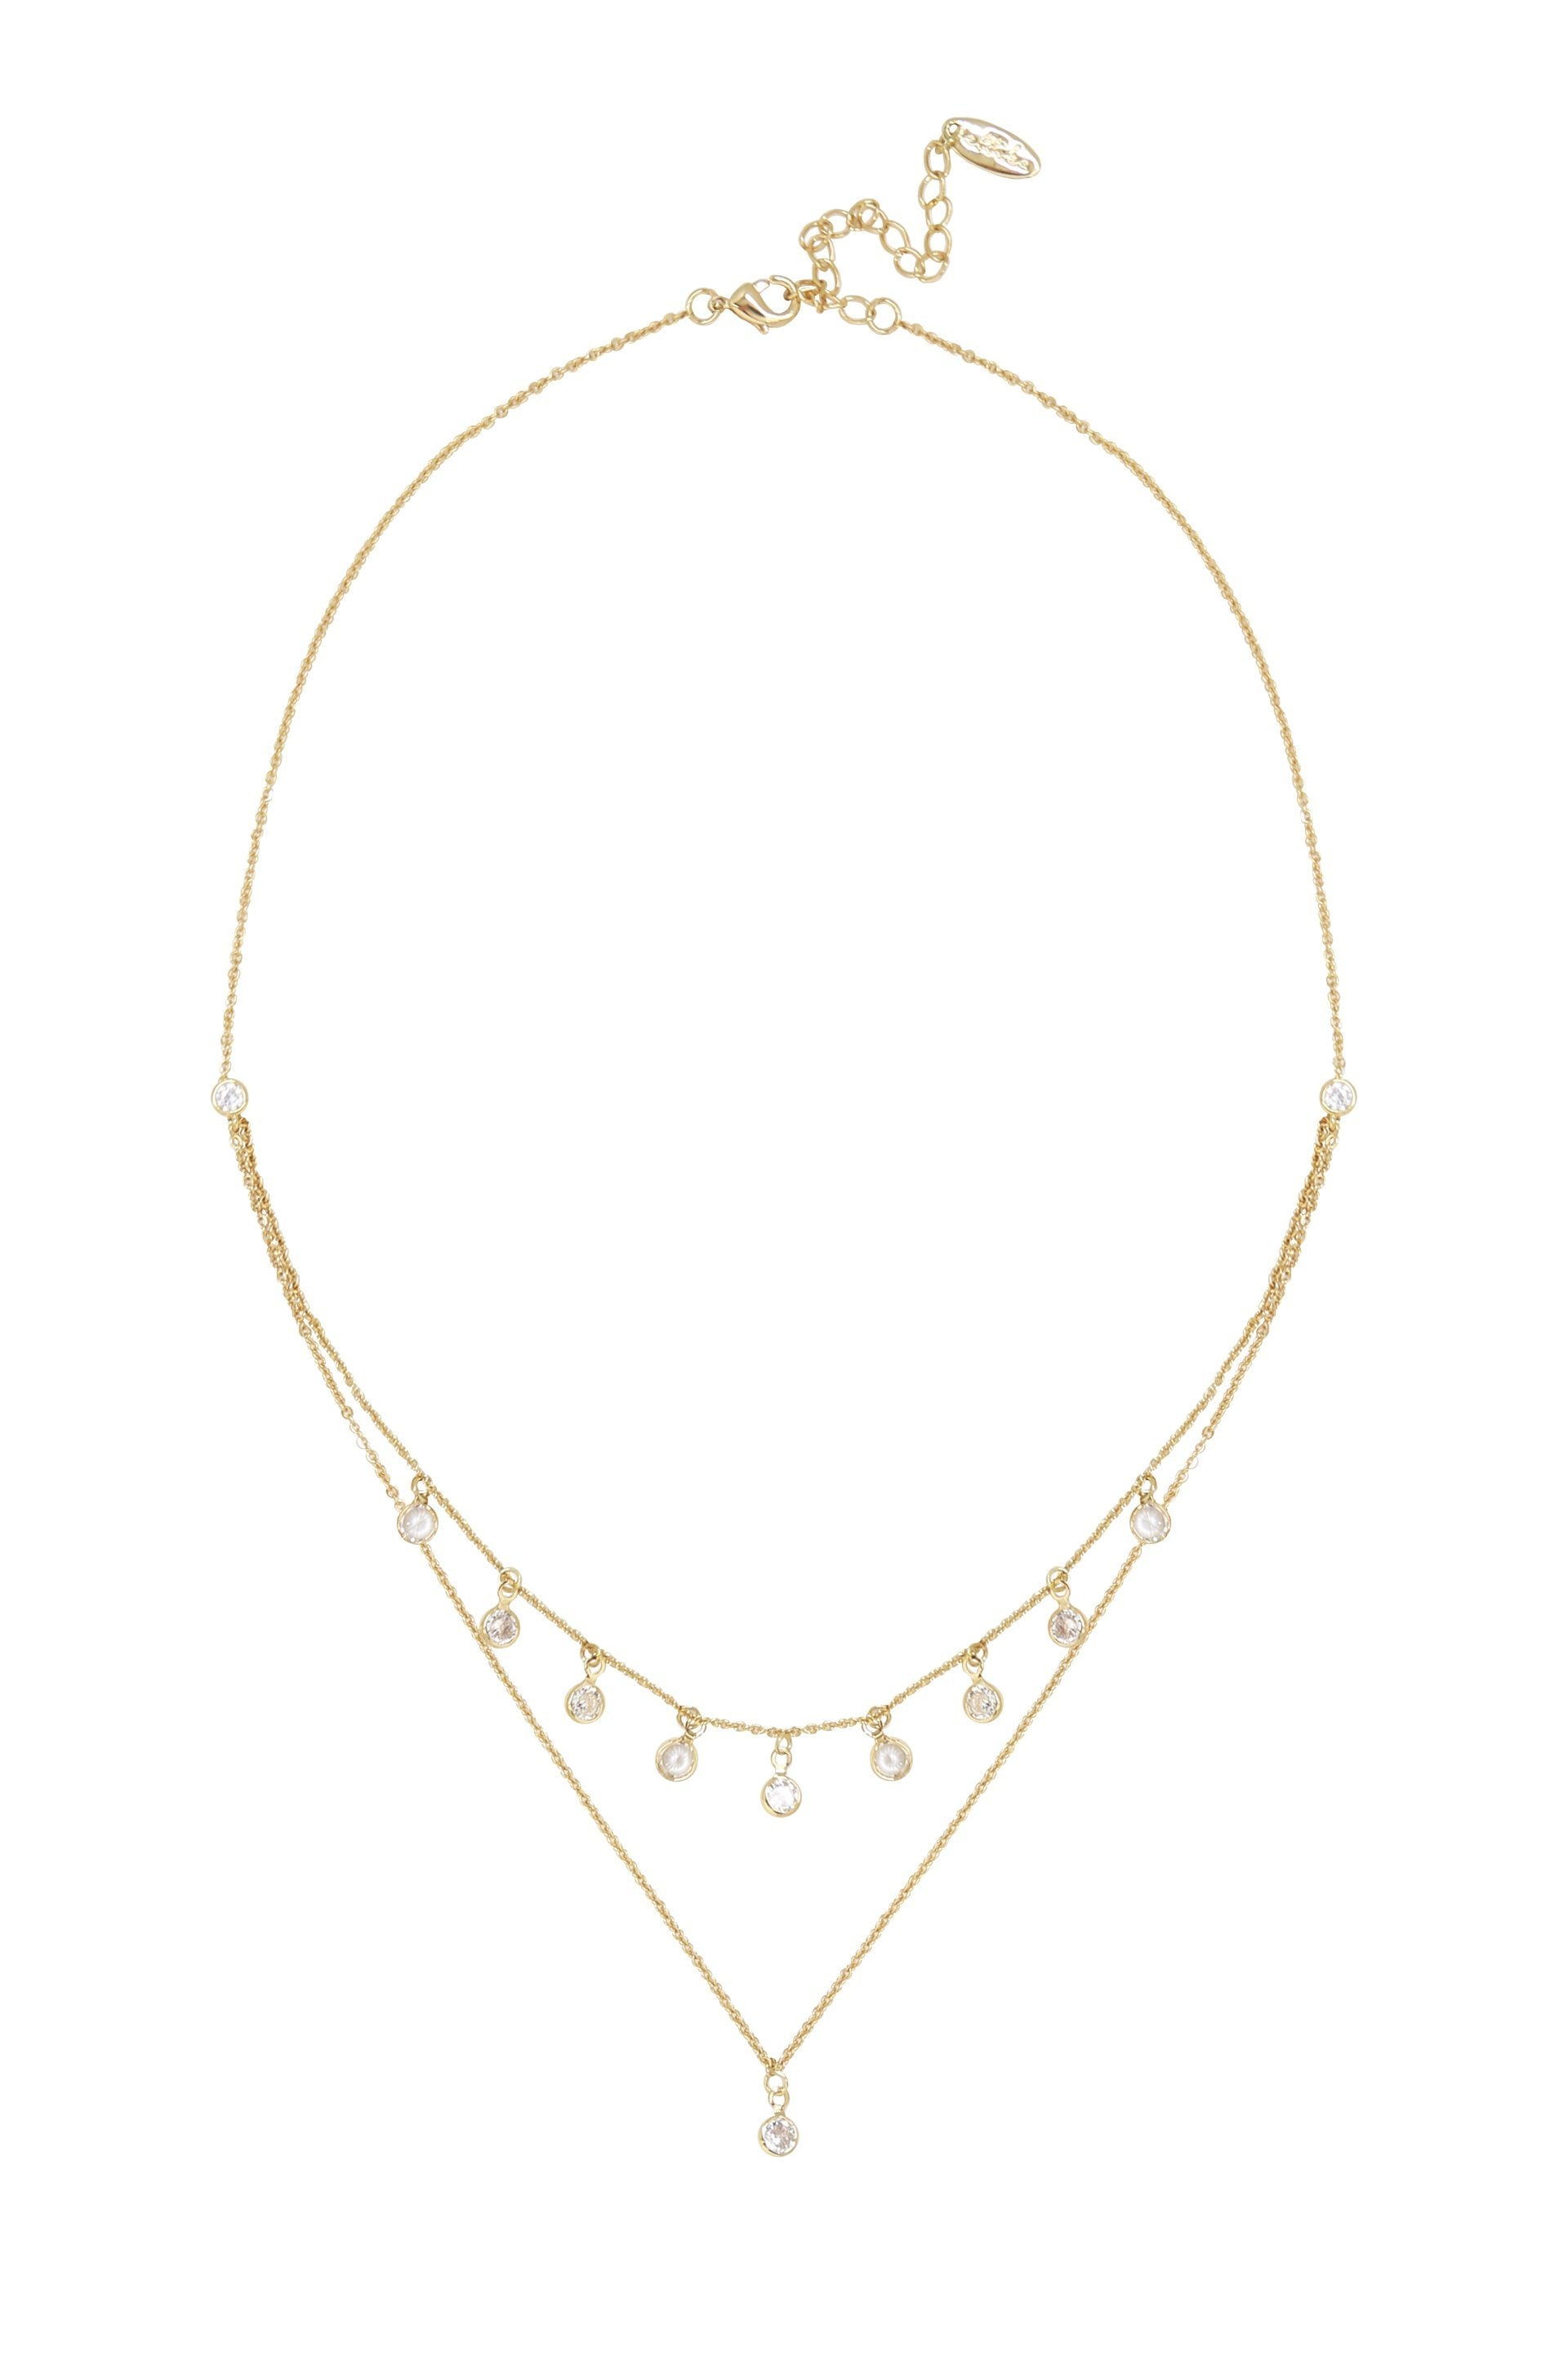 Dreamy Dainty Double Chain Necklace with Crystals